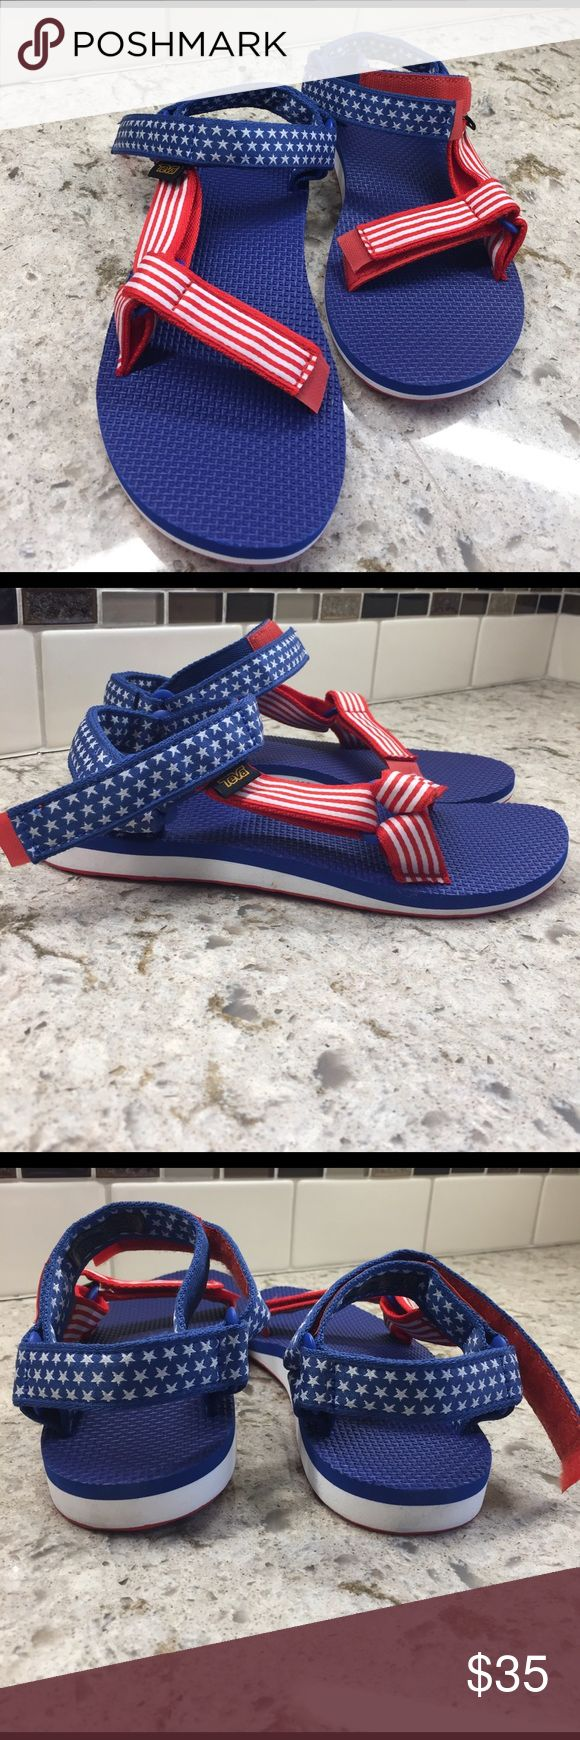 "TEVA ""4th of July"" sports sandal New in box and ready for summer celebrations great patriot sports sandal. Fun and ready for adventure Teva Shoes Athletic Shoes"